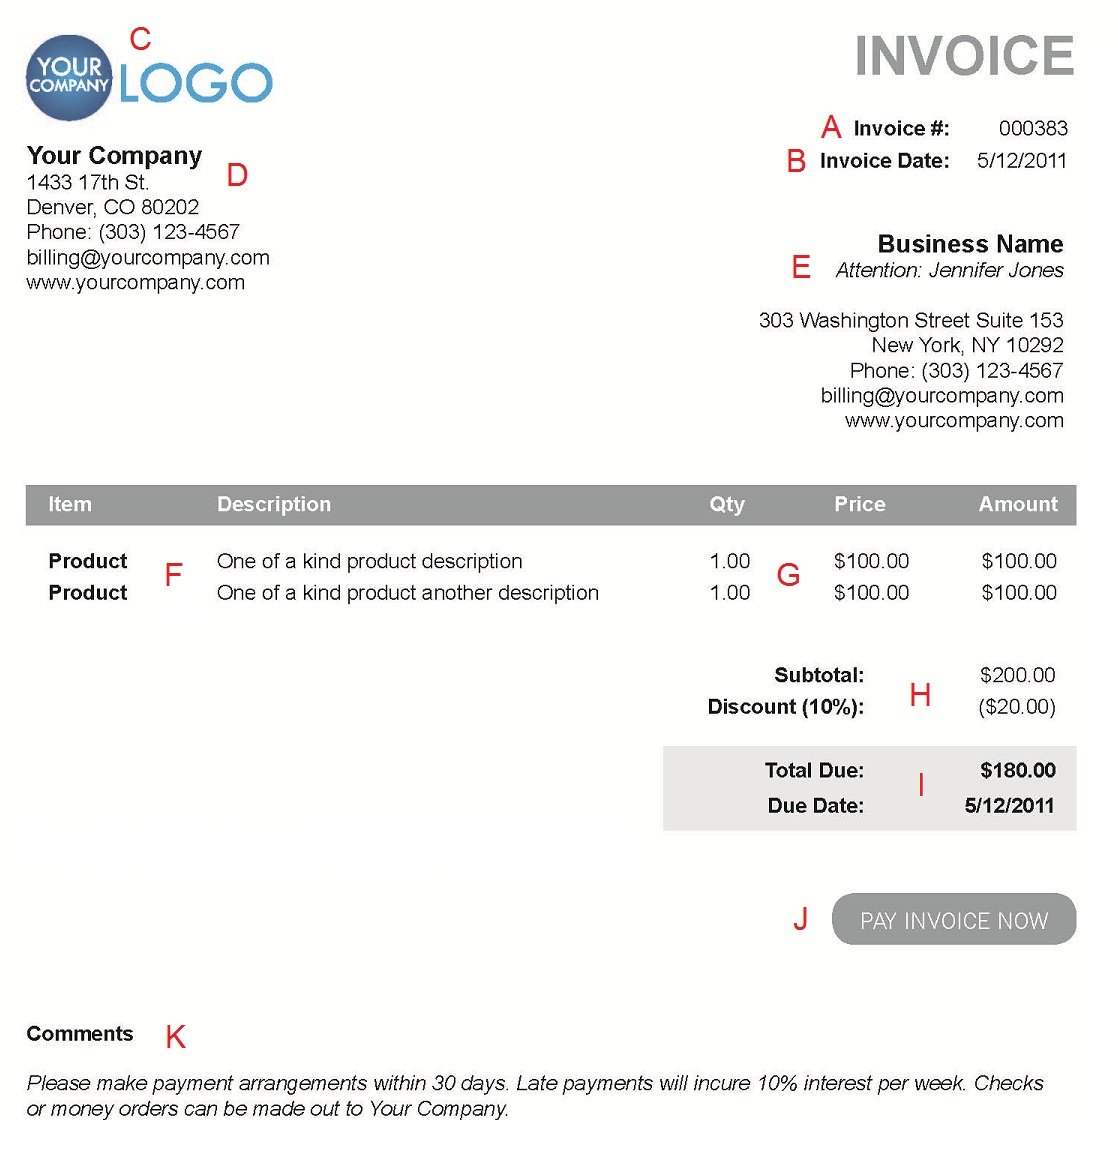 Opposenewapstandardsus  Ravishing The  Different Sections Of An Electronic Payment Invoice With Lovely A  With Extraordinary Law Firm Invoice Template Also Excel Templates For Invoices In Addition Nafta Commercial Invoice And Twilight Princess Invoice As Well As Paypal Fee Invoice Additionally Free Invoice Software For Small Business From Paysimplecom With Opposenewapstandardsus  Lovely The  Different Sections Of An Electronic Payment Invoice With Extraordinary A  And Ravishing Law Firm Invoice Template Also Excel Templates For Invoices In Addition Nafta Commercial Invoice From Paysimplecom